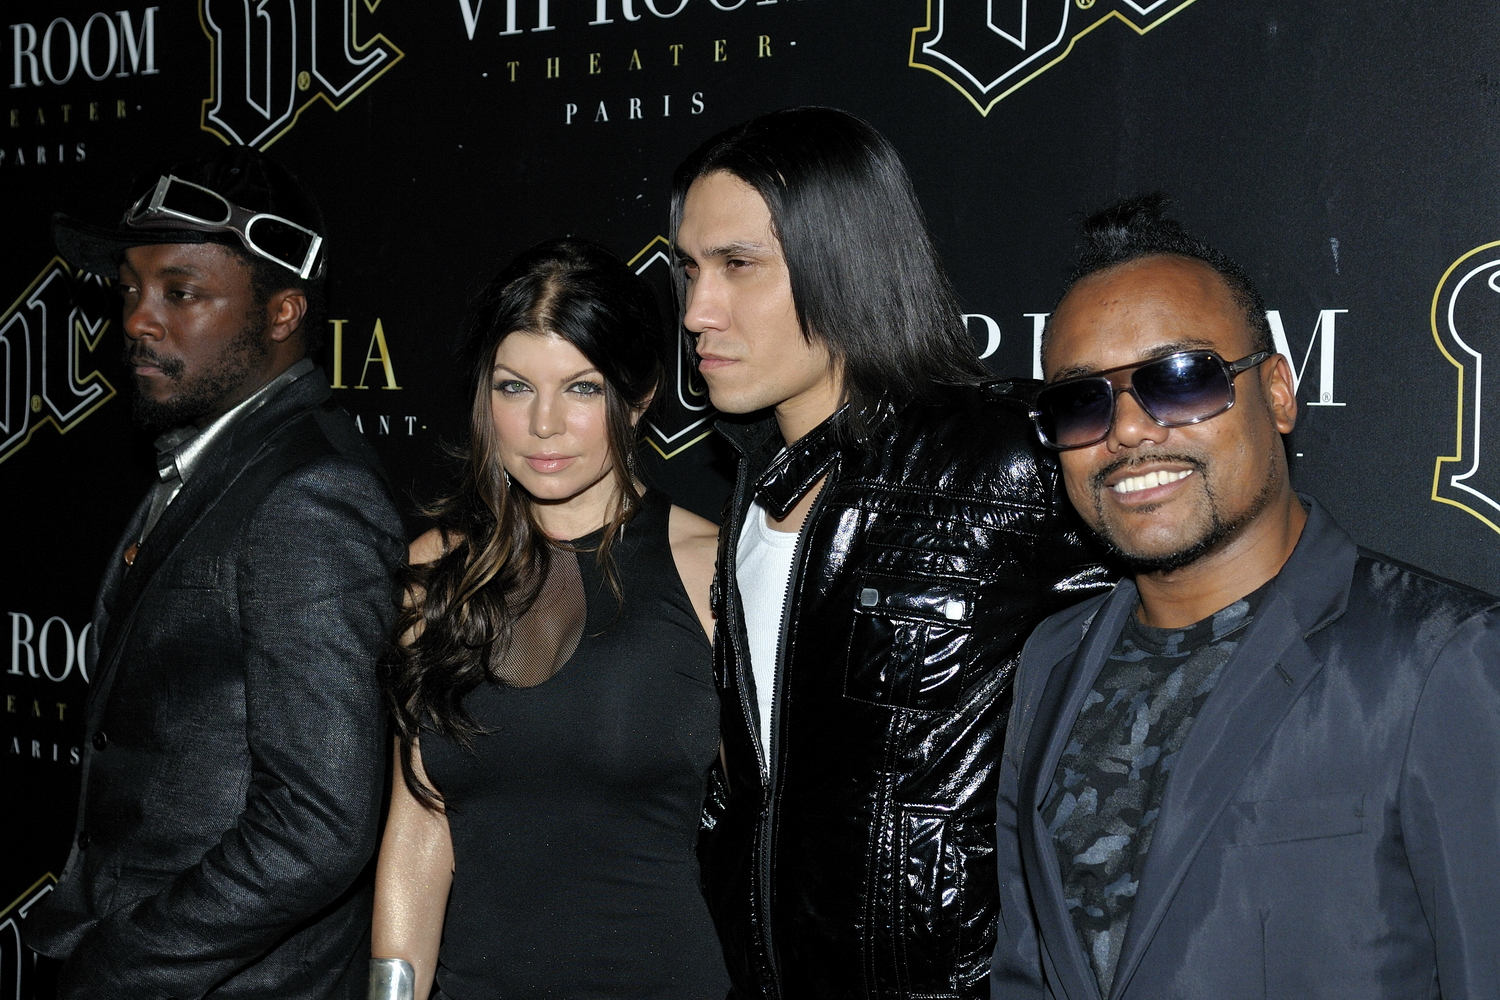 Les Black Eyed Peas en concert au VIP Room Paris